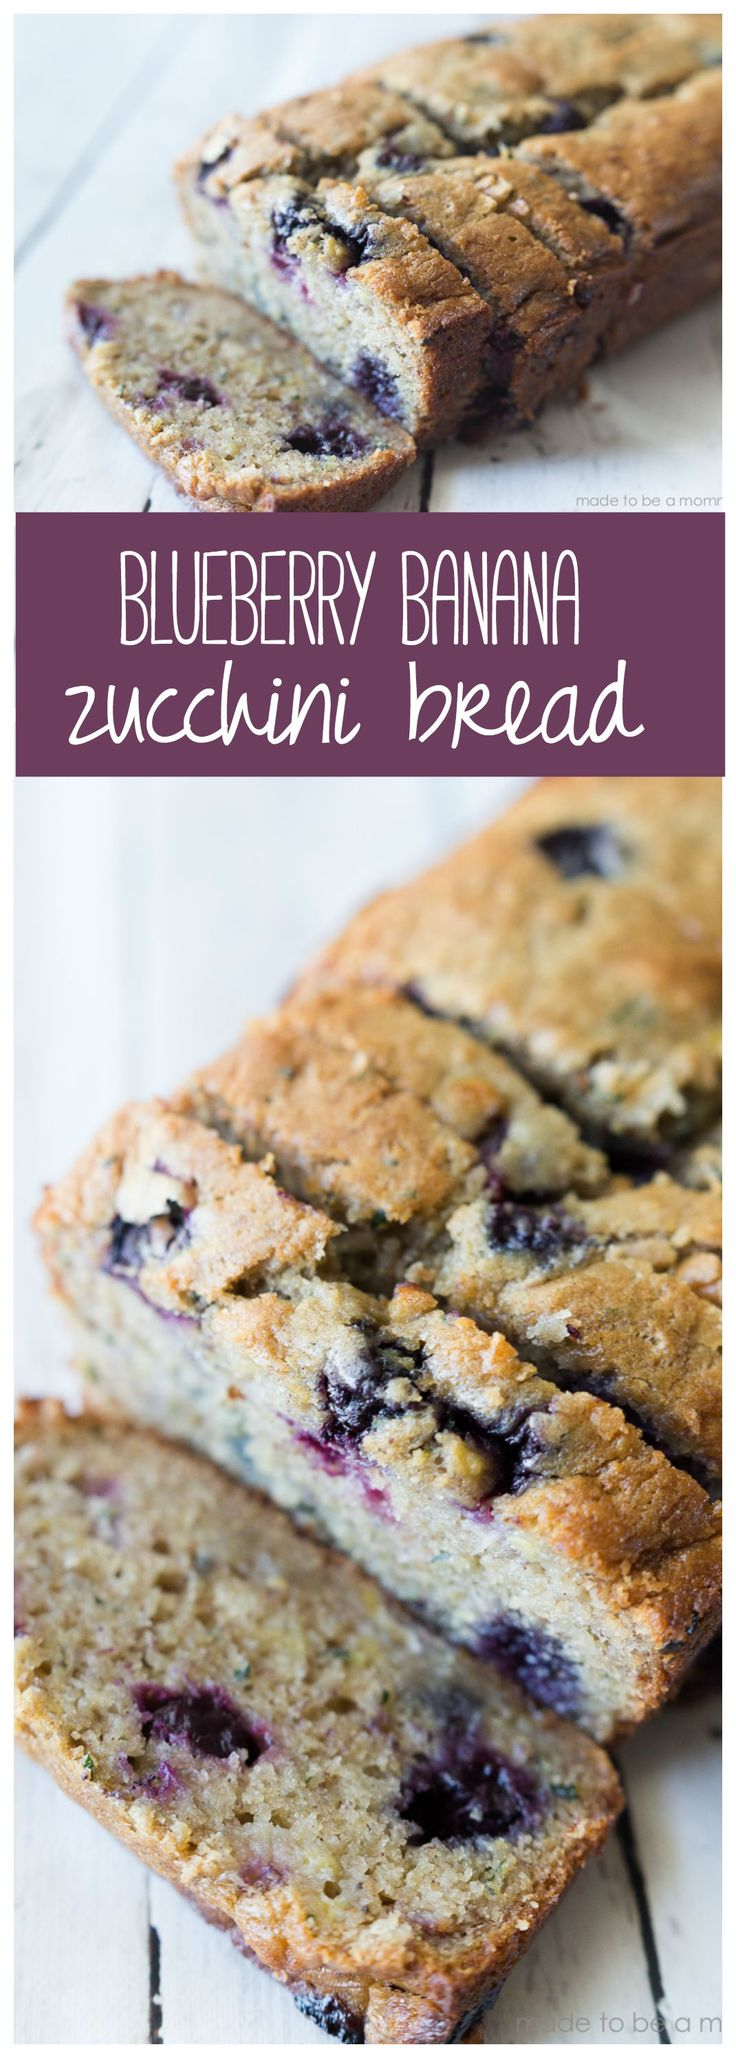 Blueberry Banana Zucchini Bread from madetobeamomma.com